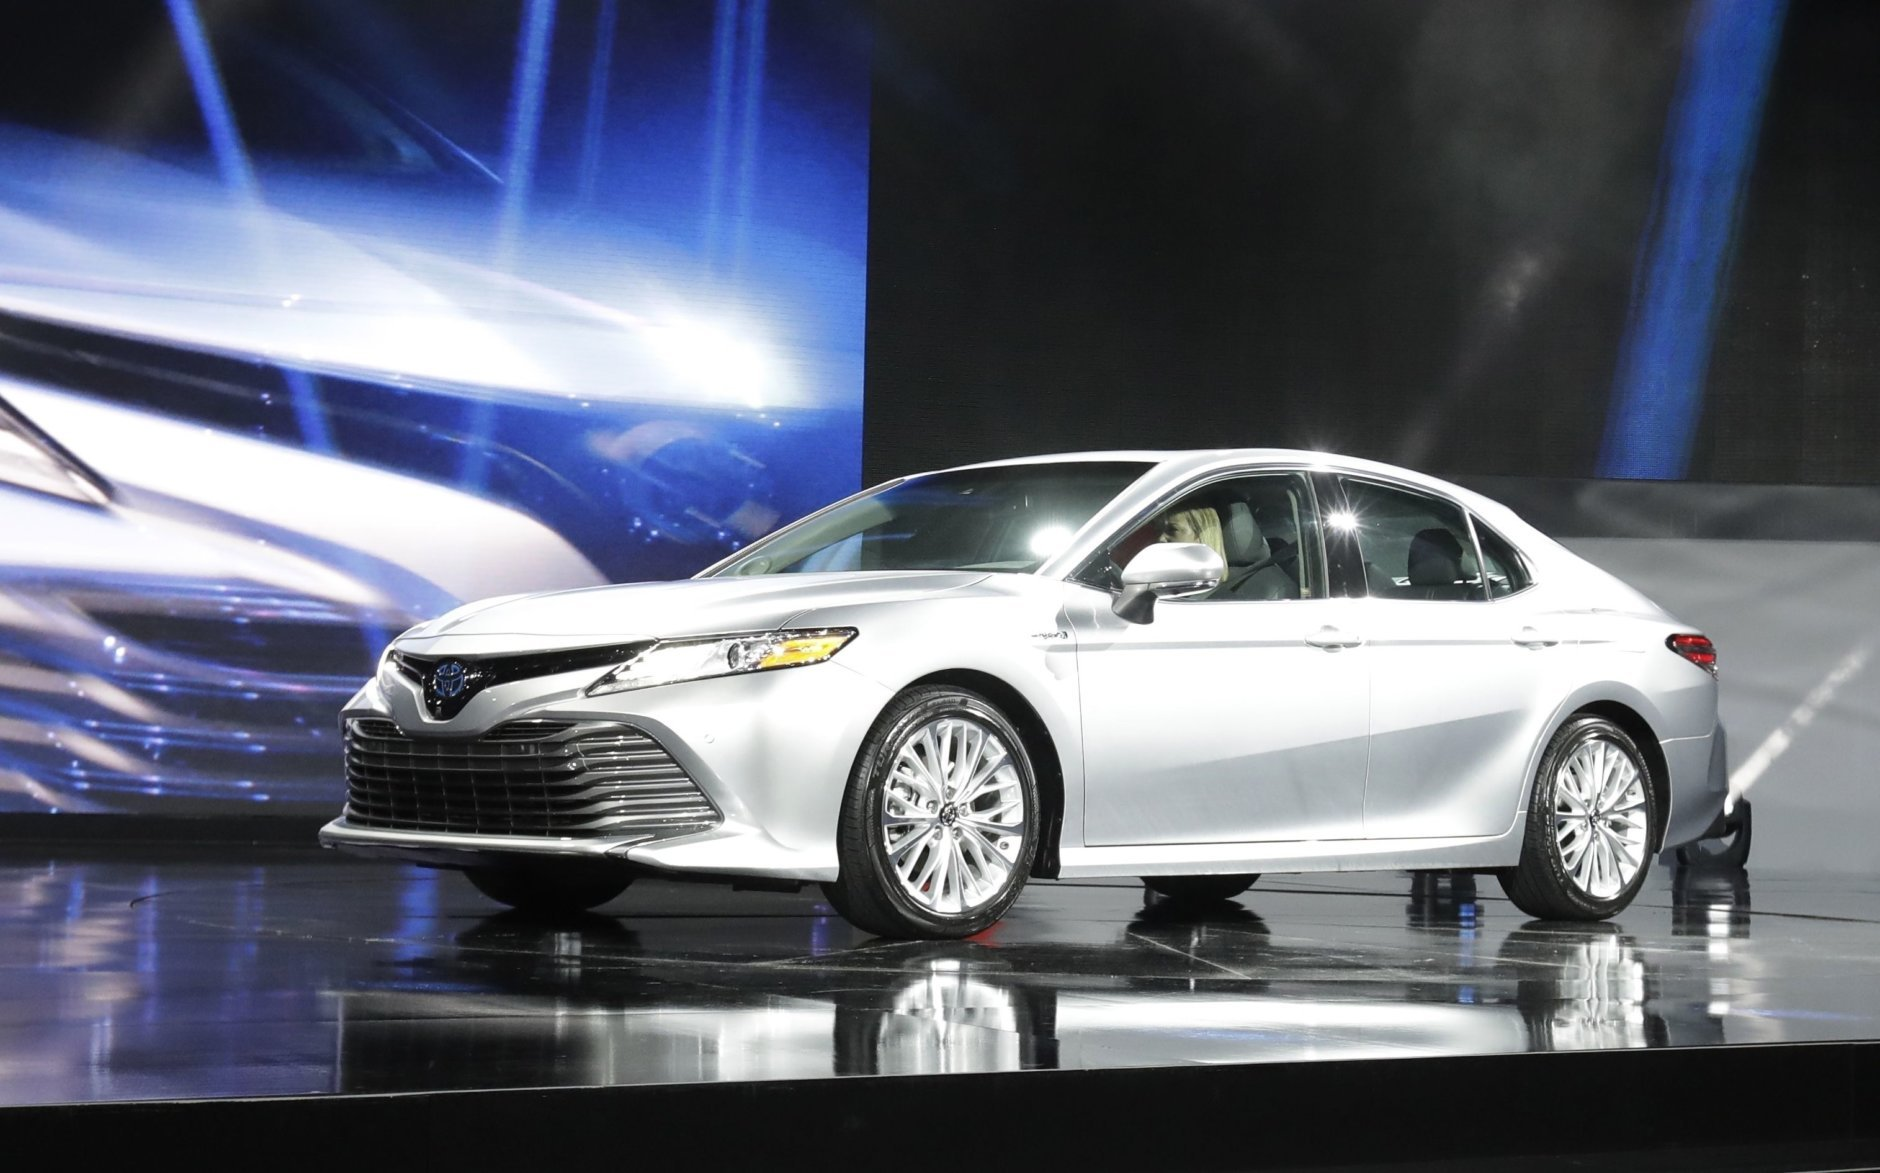 The 2017 model of the Toyota Camry saw 1,100 thefts in 2017. (AP Photo/Carlos Osorio, File)